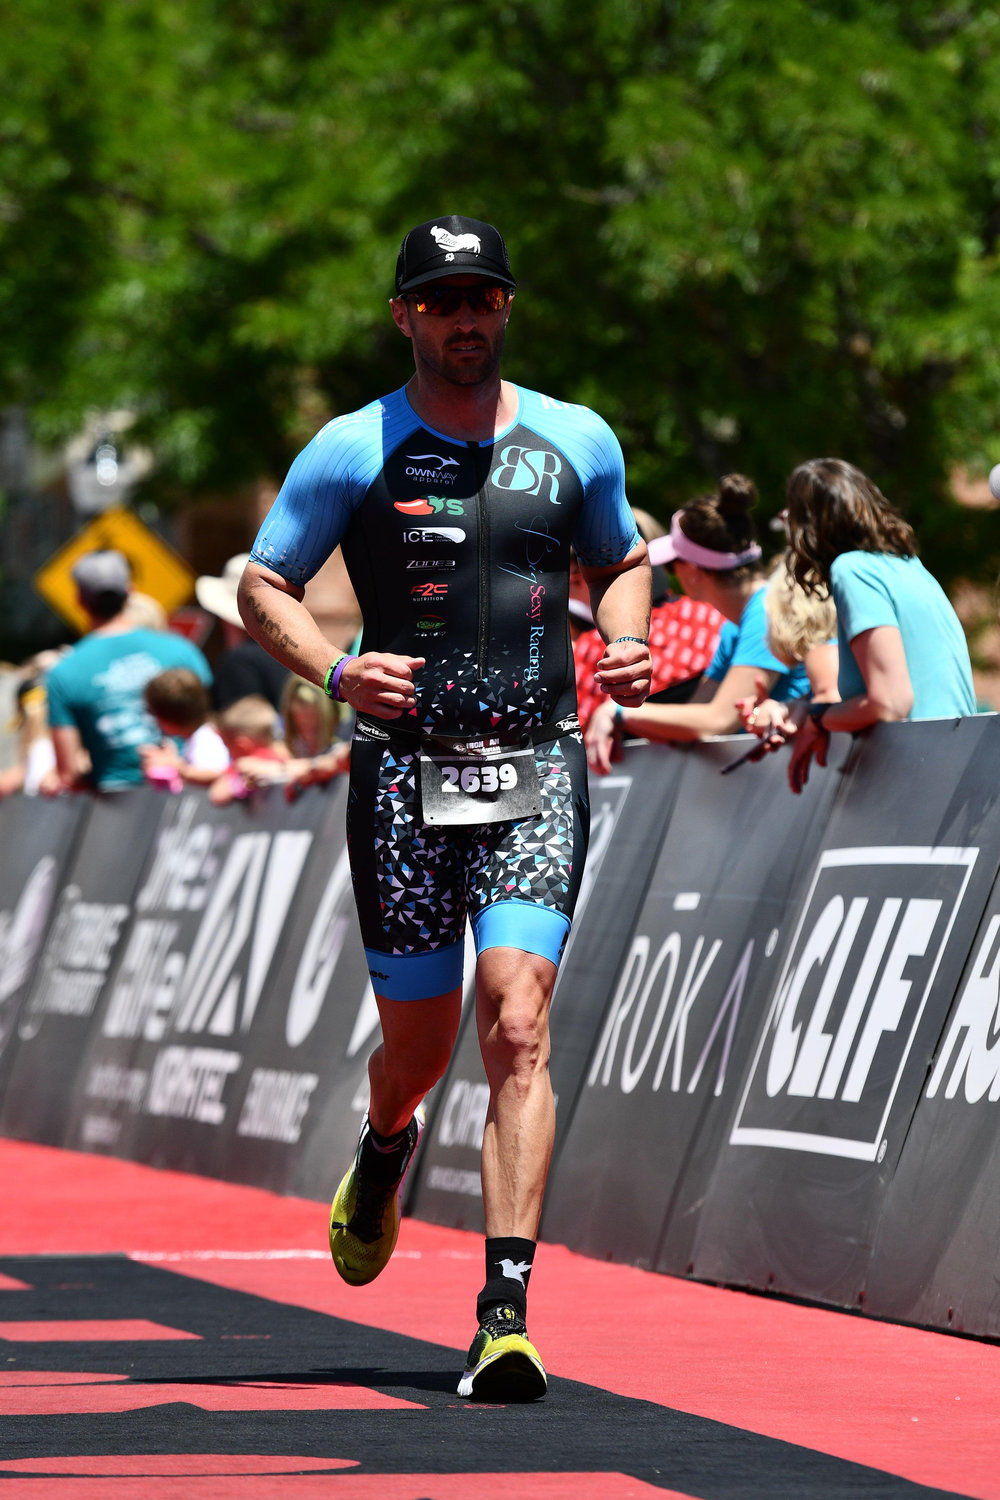 Coach_Terry_Wilson_Chad_Bunting_Ironman_St._George_70.3_Run.JPG